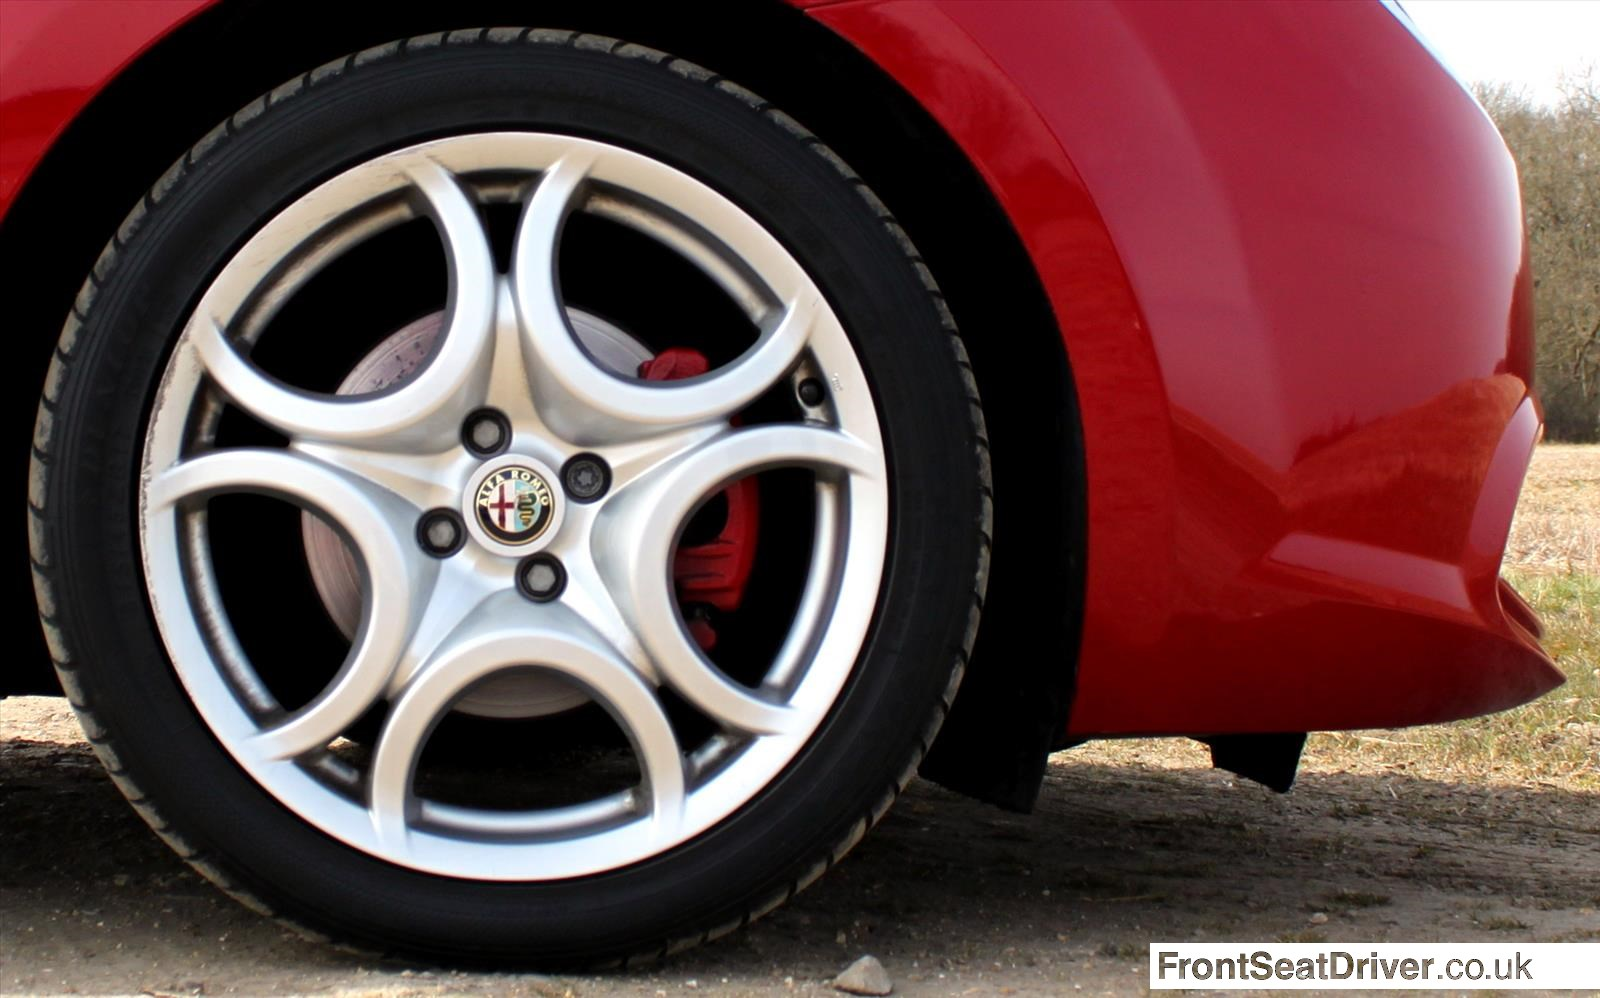 Alfa Romeo MiTo 2013 Wheel Detail